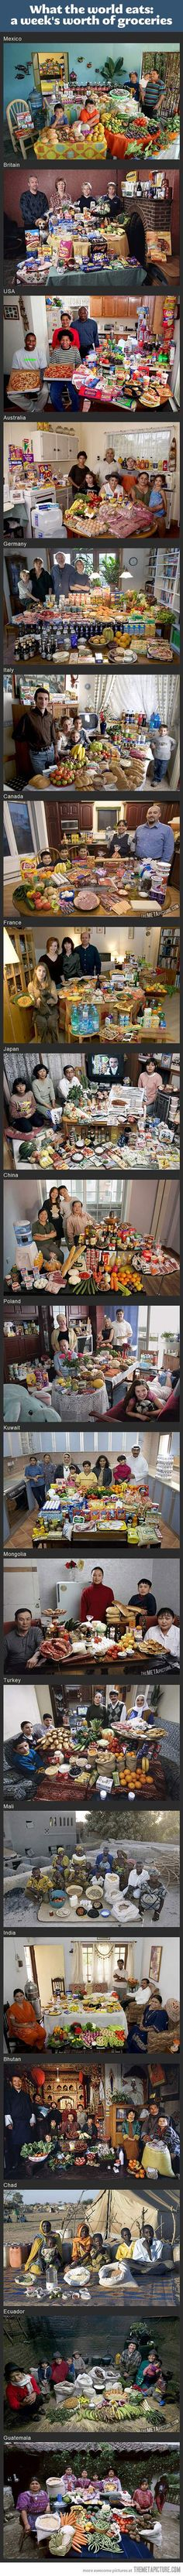 Culture | Food| A week's worth of groceries around the world… Exercise in cultural awareness. So interesting